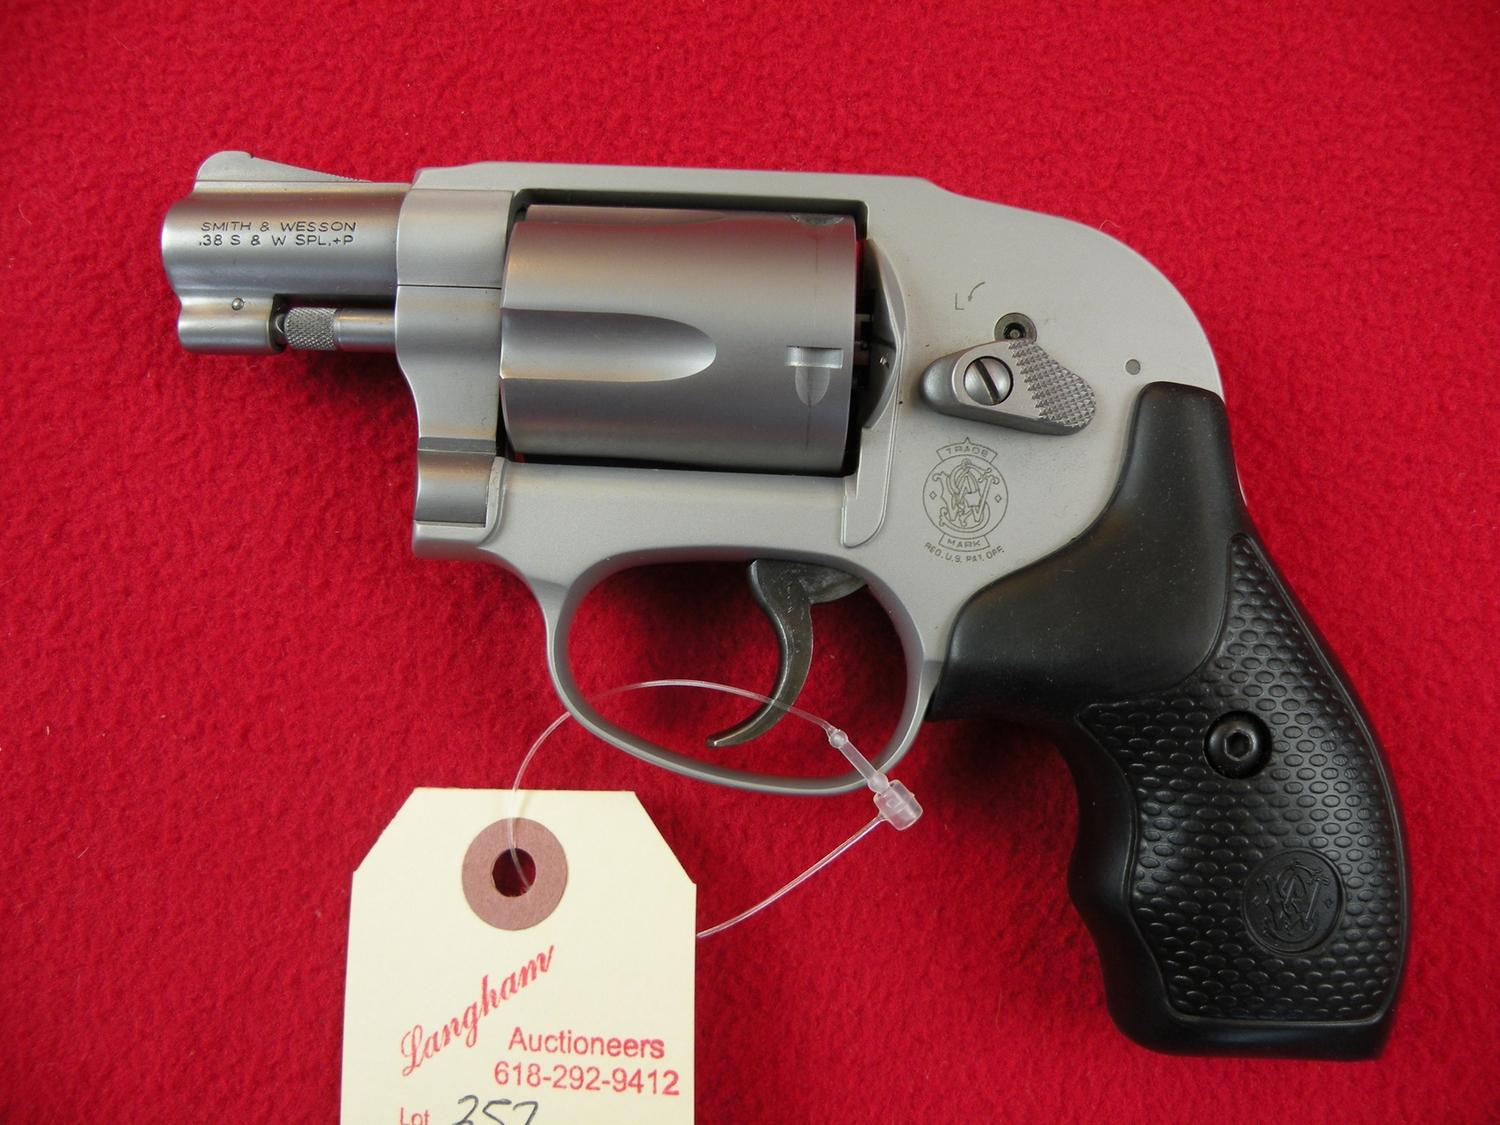 ... Image 3 : Smith & Wesson 638 Airweight 38 Special 5 Shot revolver